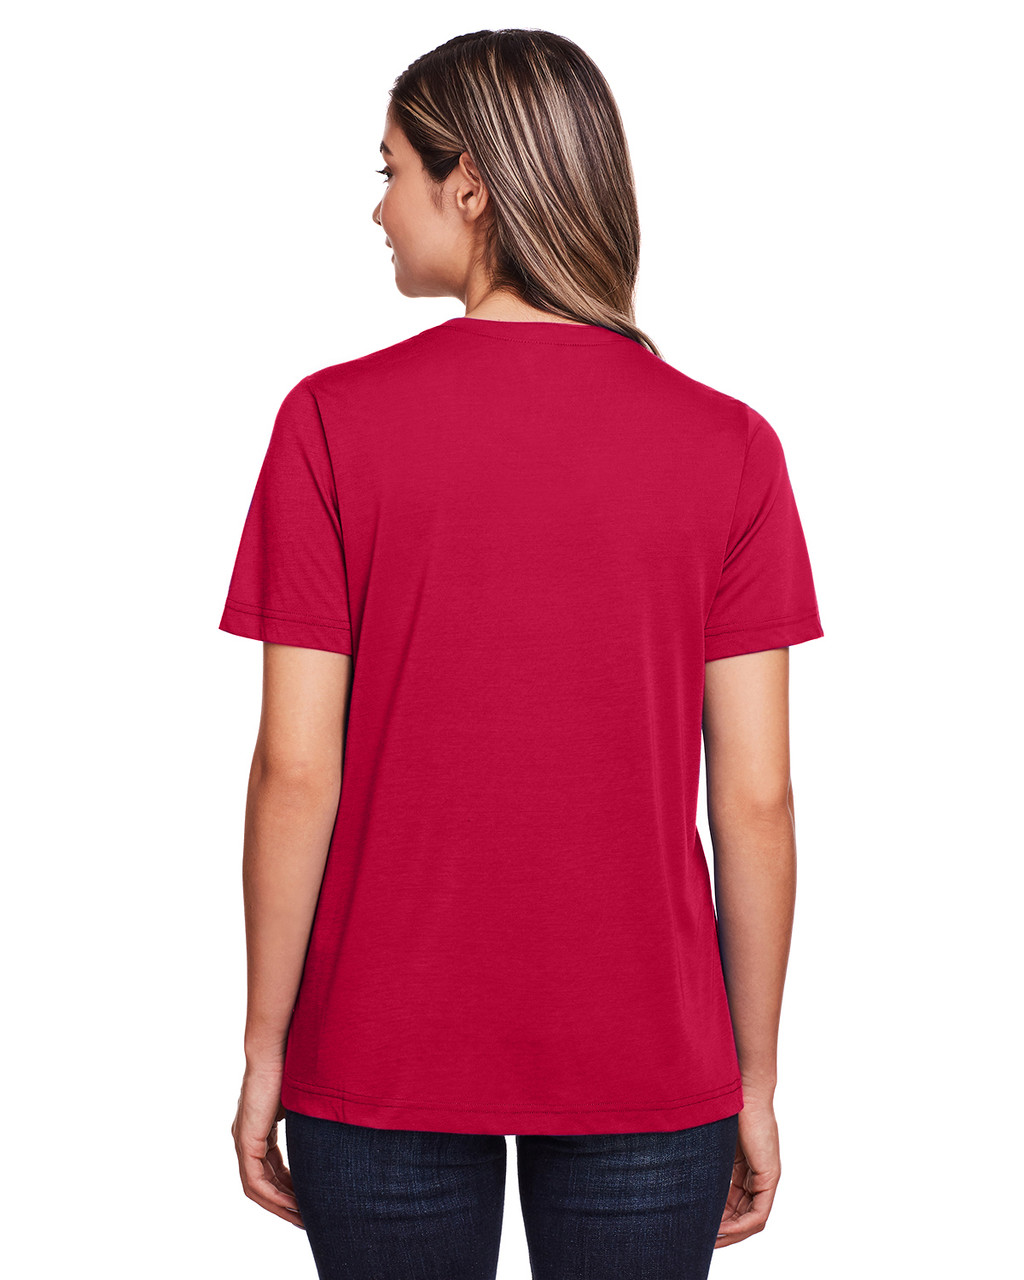 Classic Red - Back, CE111W Core 365 Ladies' Fusion ChromaSoft™ Performance T-Shirt | BlankClothing.ca